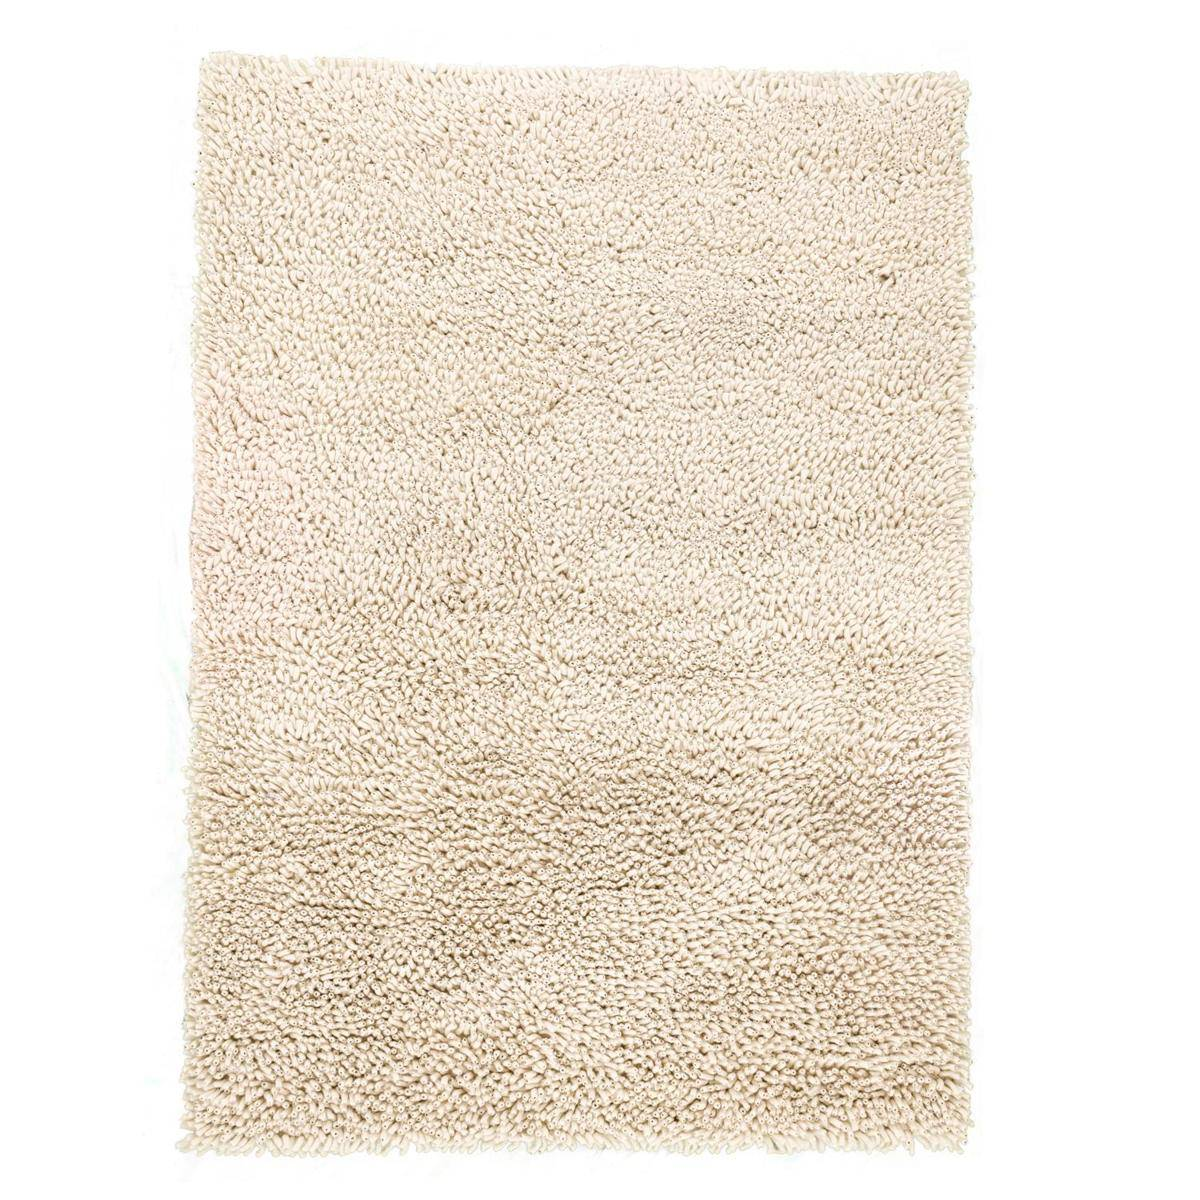 Buy Coral Rug White 200x300cm Sku Corw5 Online The